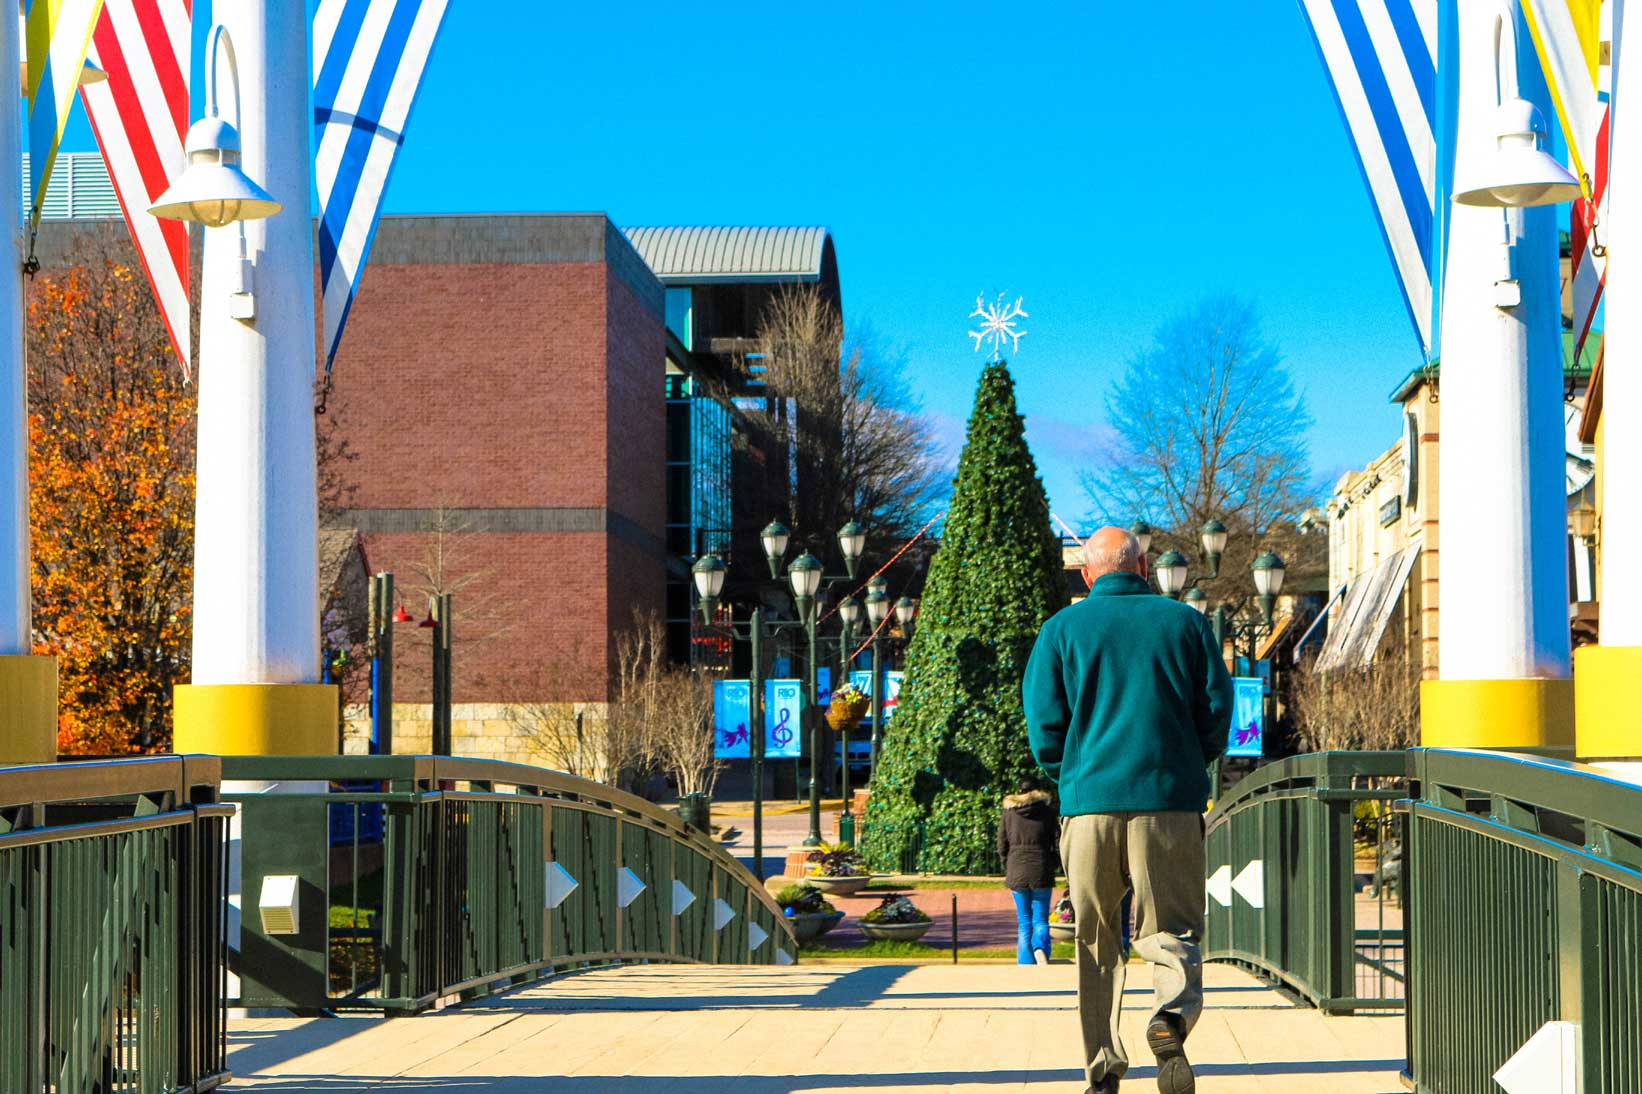 Person walking on bridge in Gaithersburg, MD